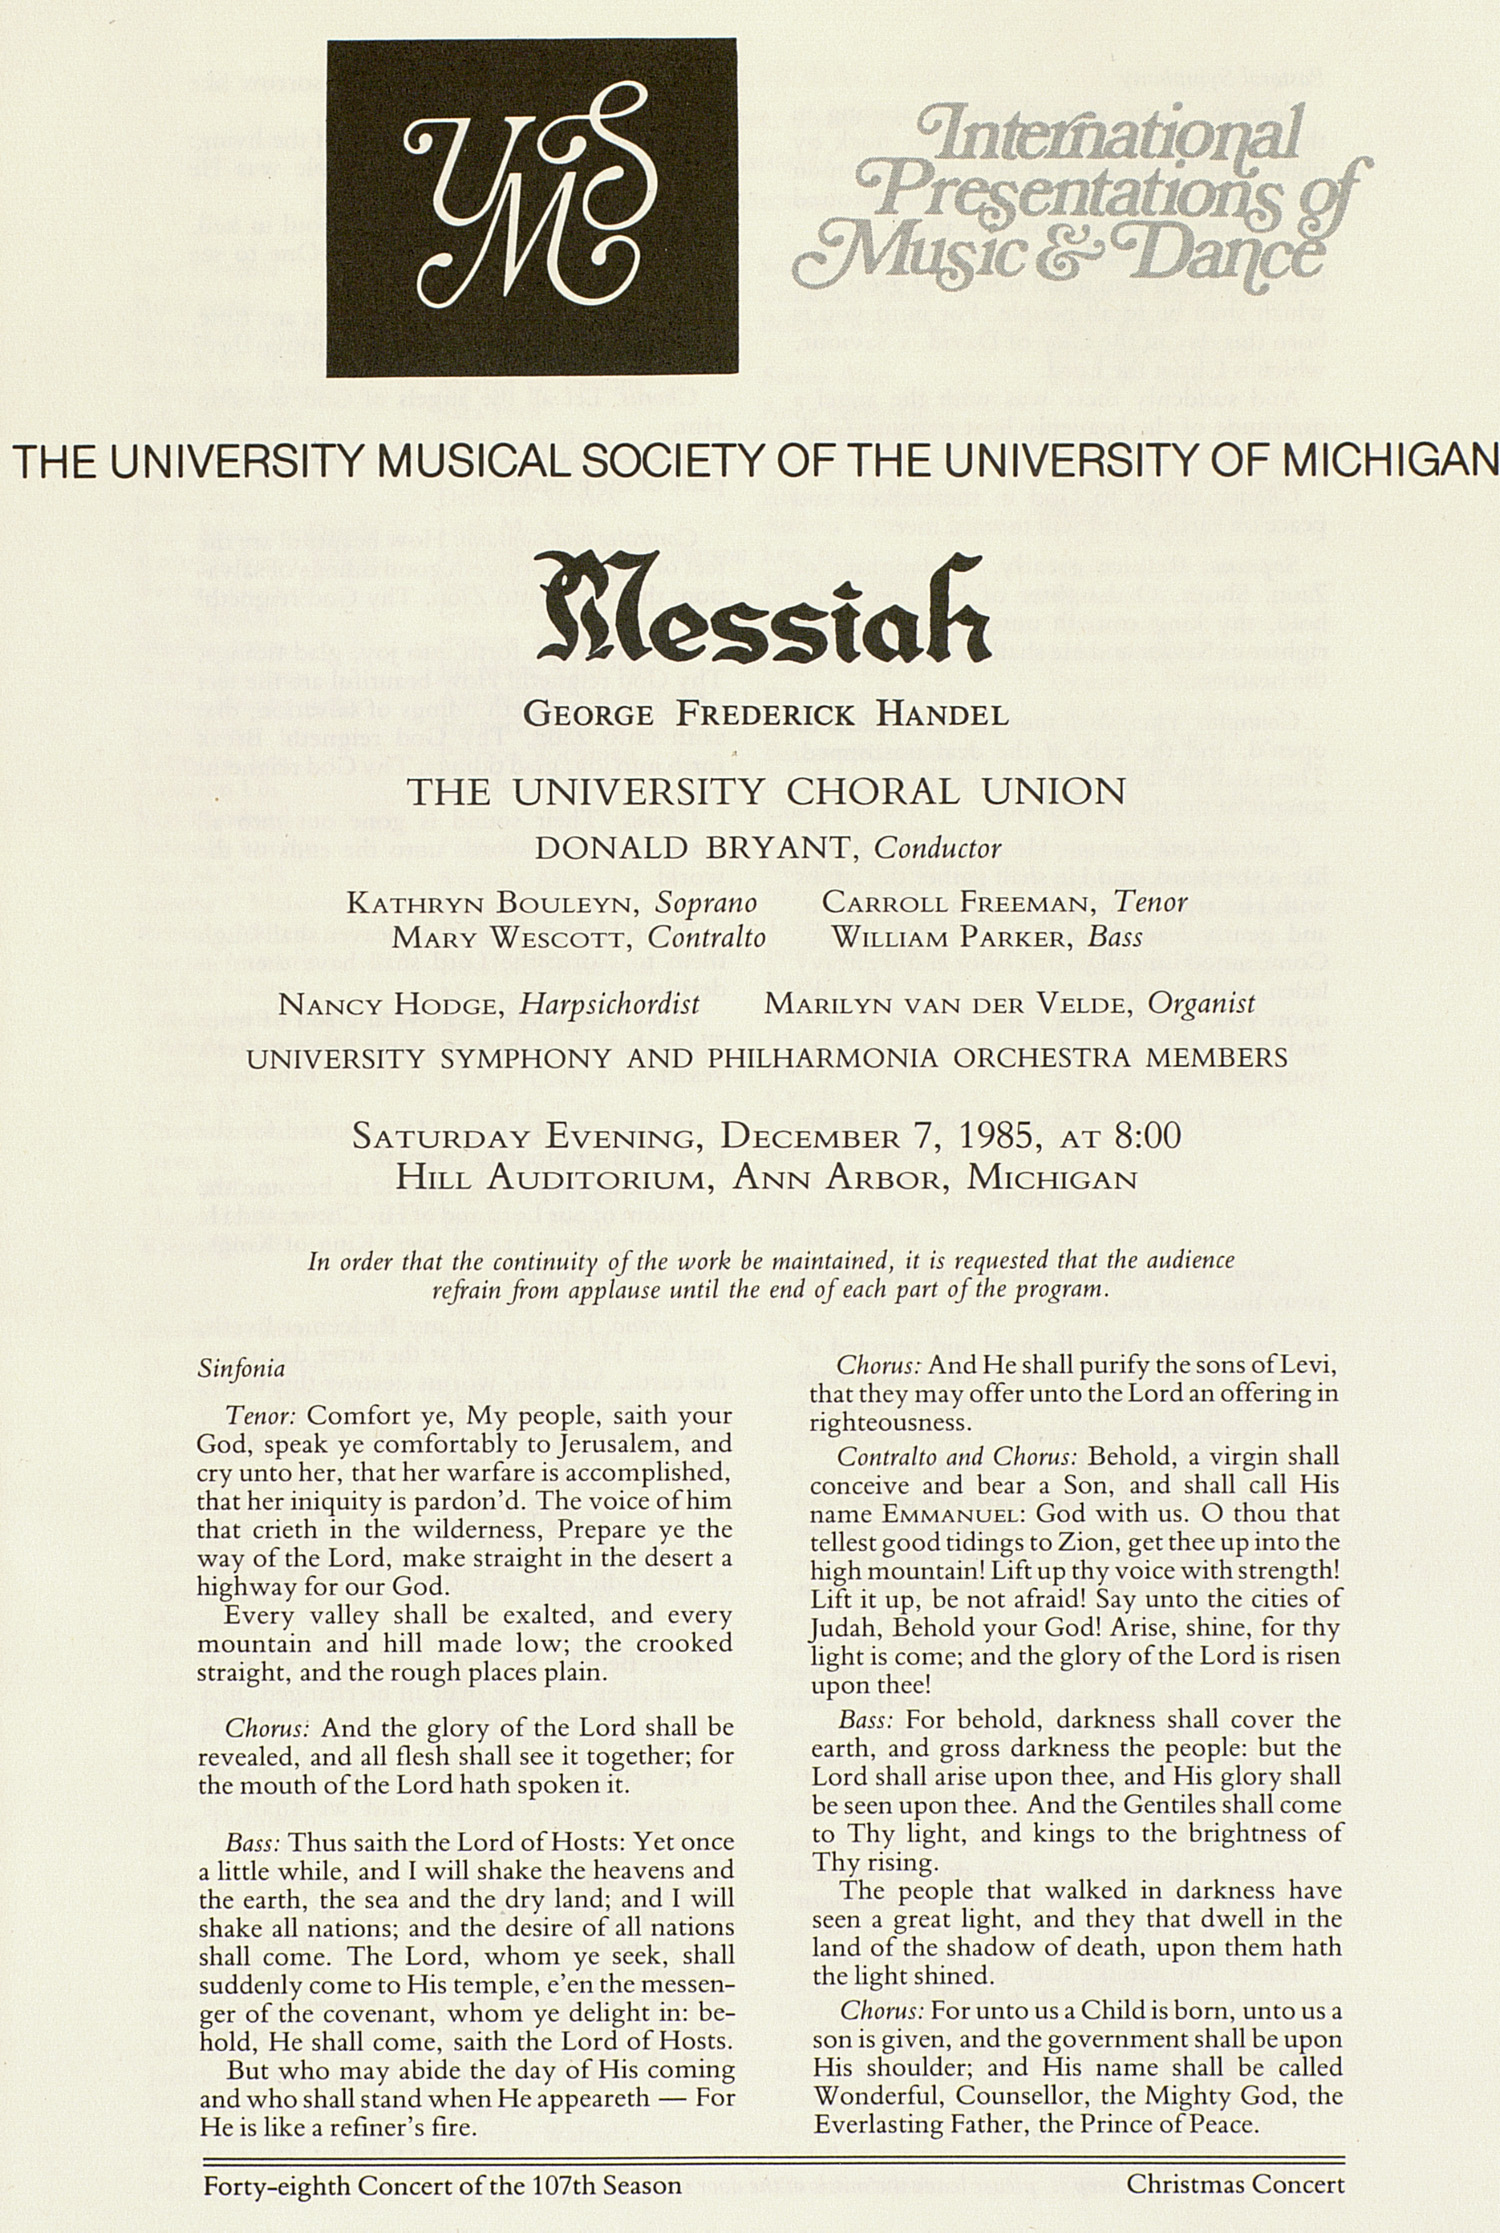 UMS Concert Program, December 7, 1985: Messiah -- George Frederick Handel image